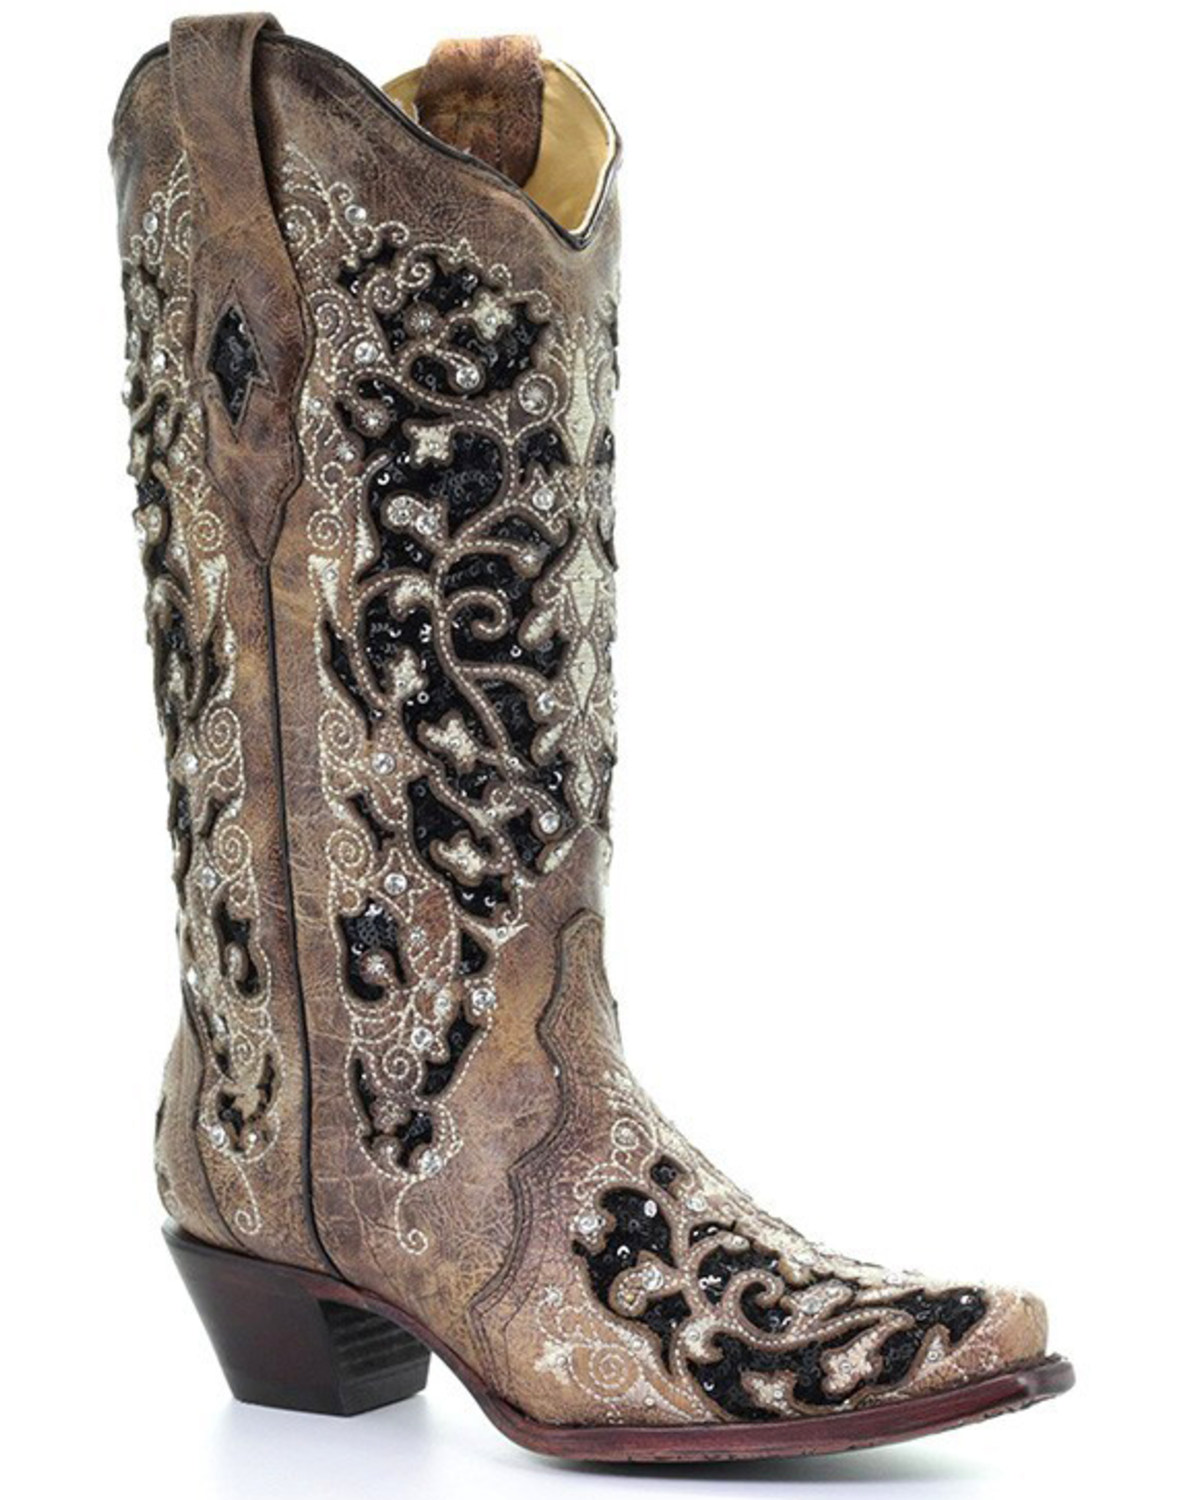 ca4d1dff482 Corral Women's Floral Embroidered Western Boots - Snip Toe